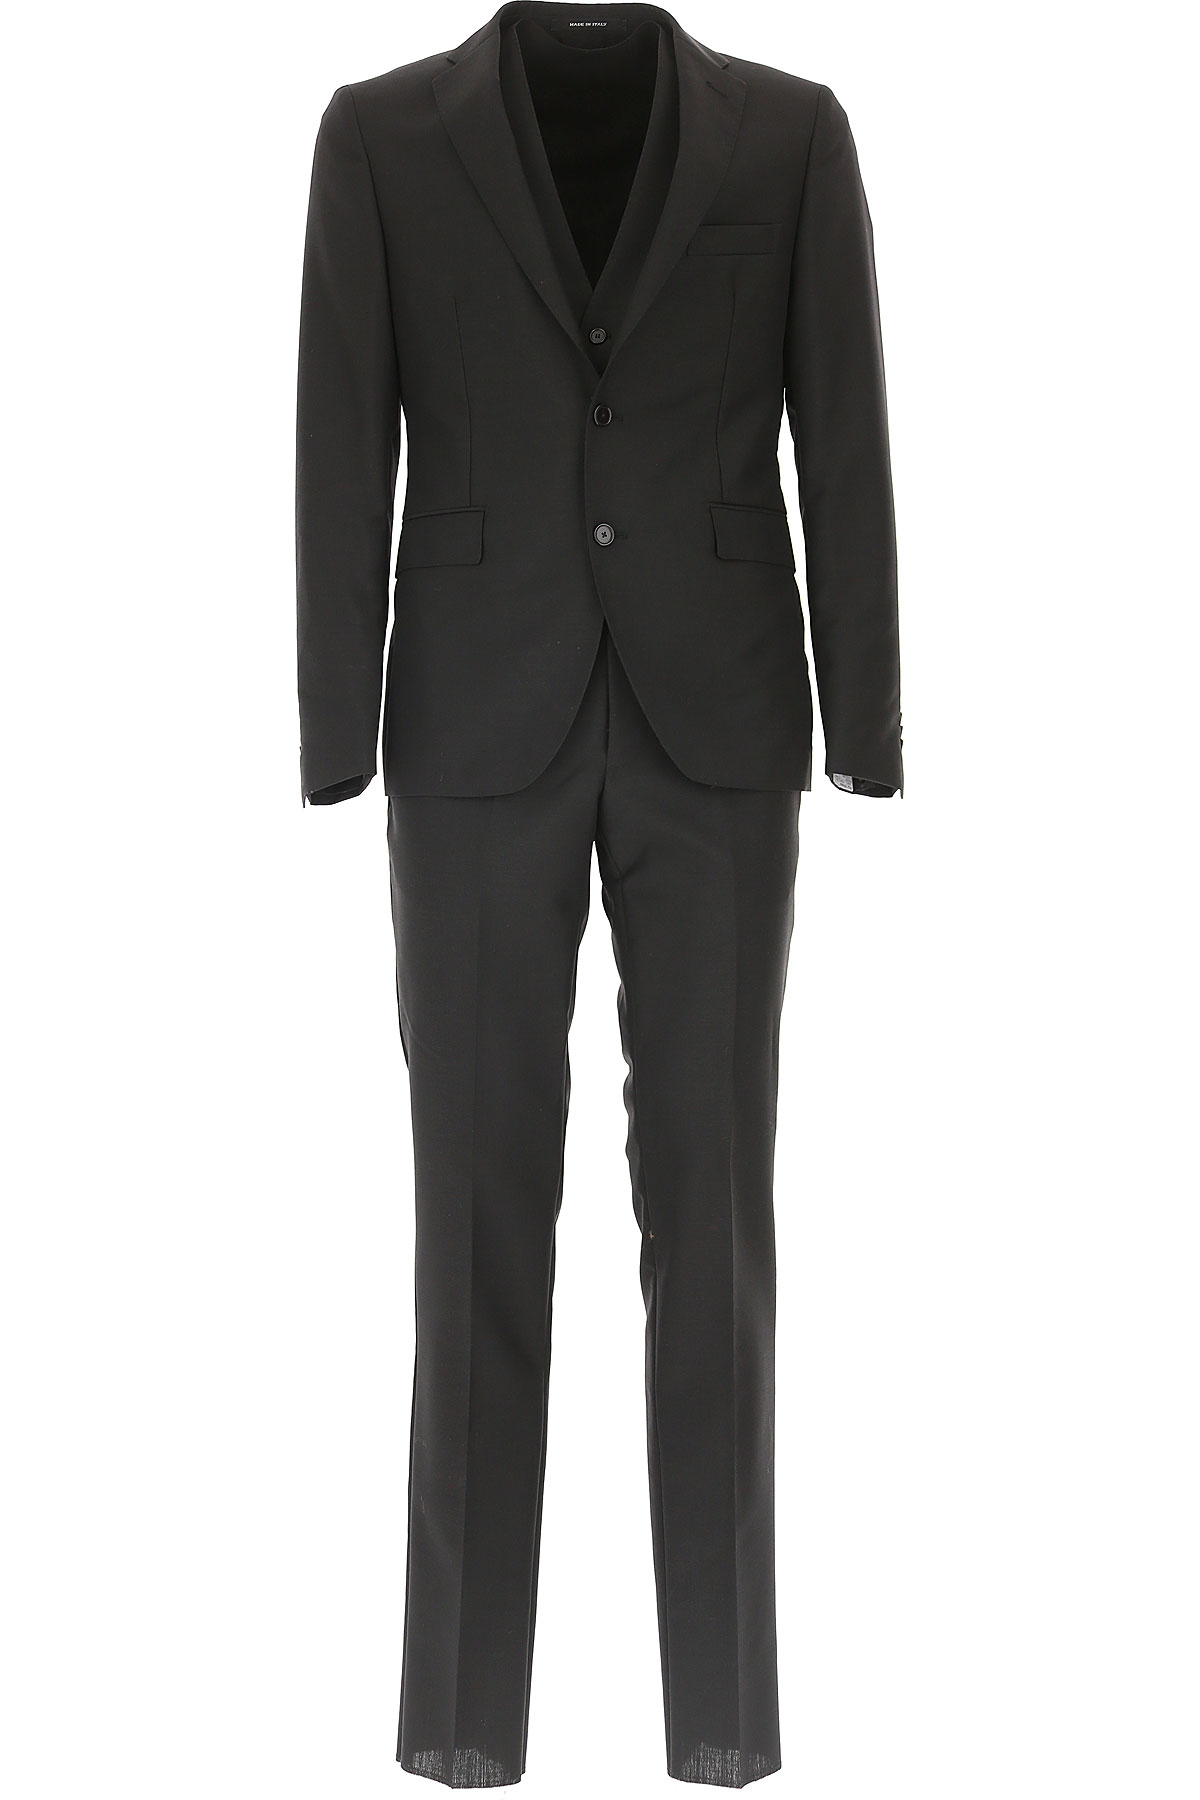 Tagliatore Men's Suit On Sale in Outlet, Black, Virgin wool, 2019, L XL